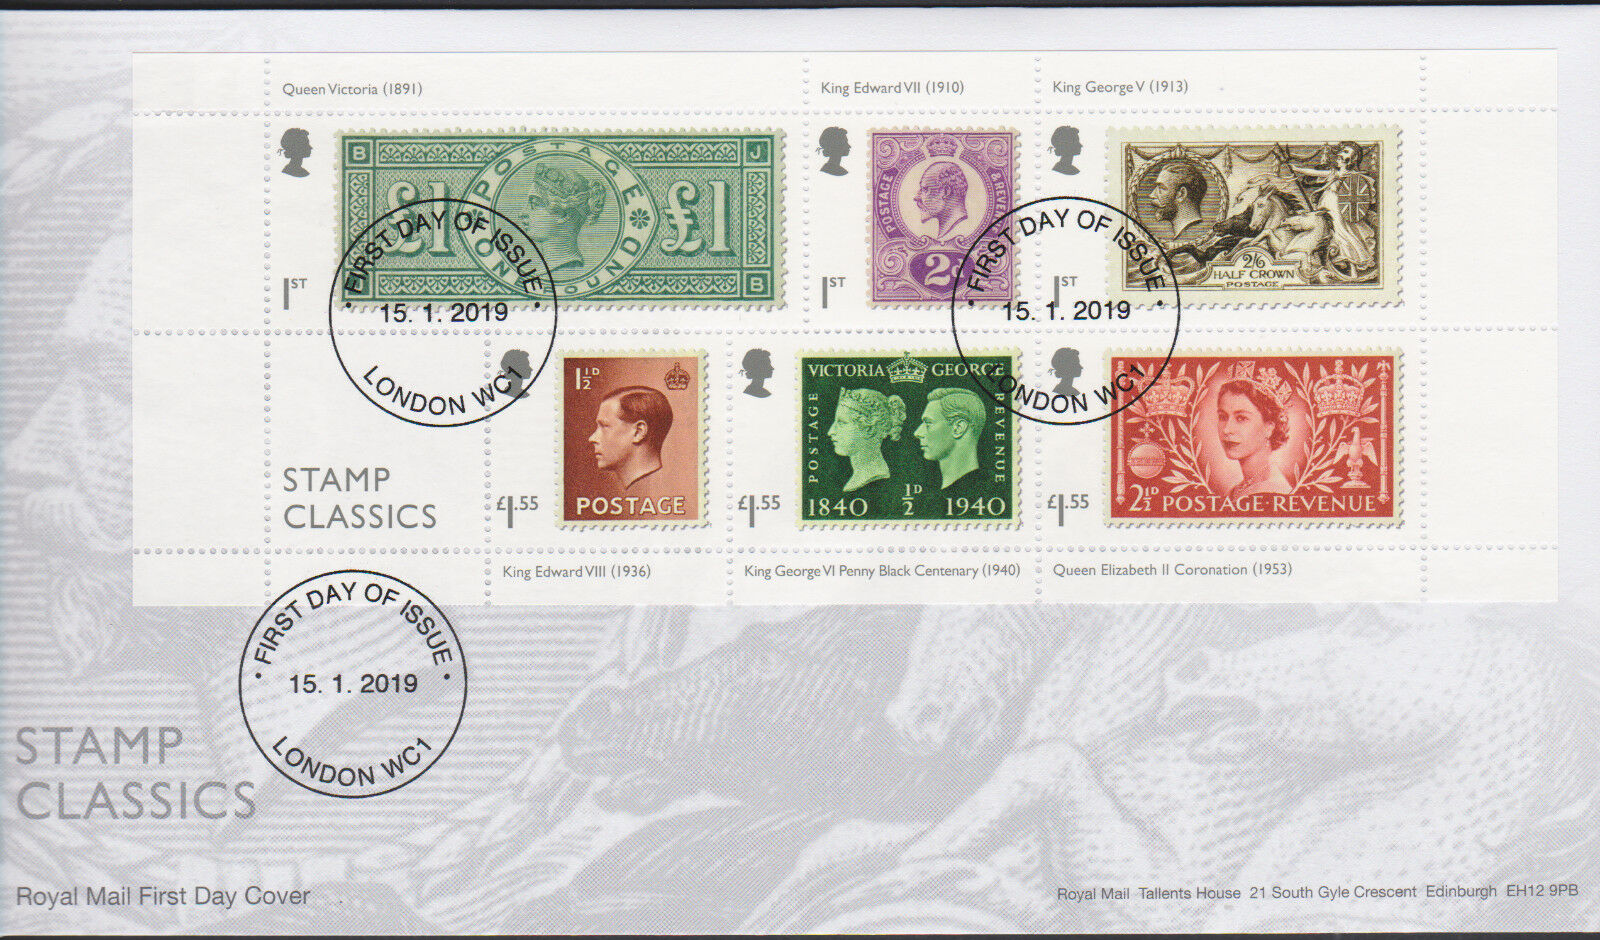 Great Britain - Stamp Classics (January 15, 2019) first day cover - London WC1 non-pictorial cancellation